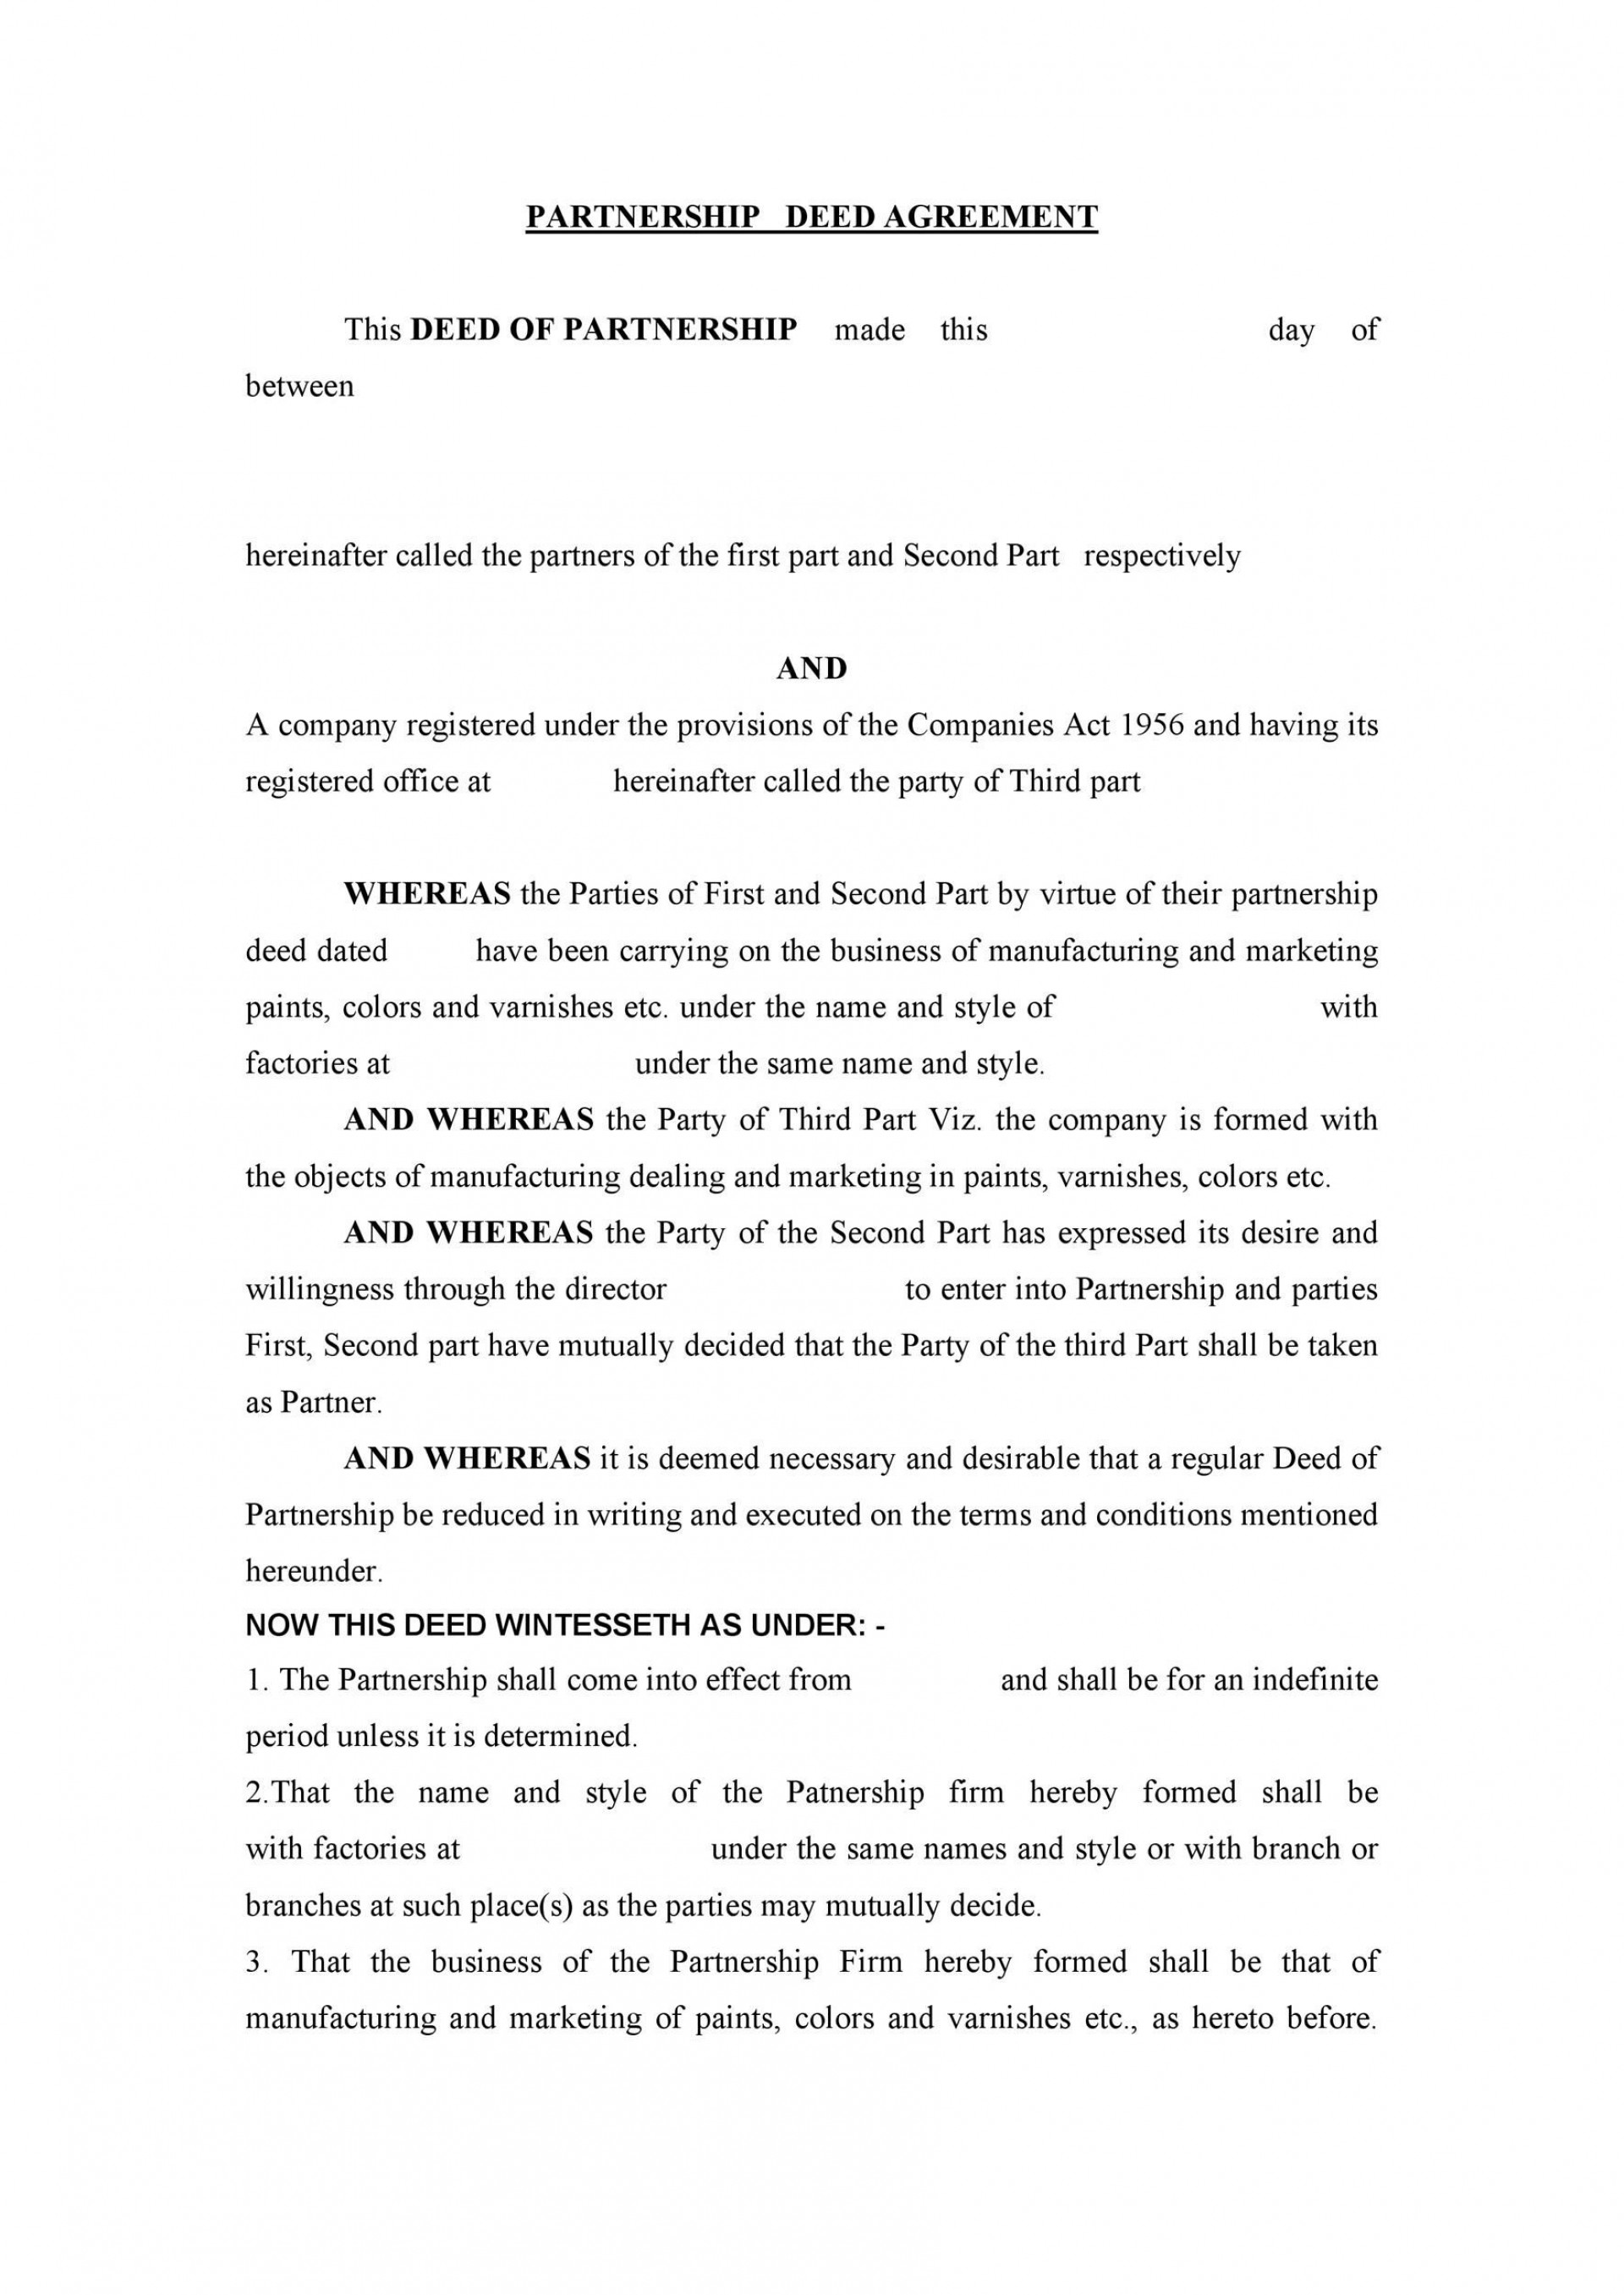 007 Staggering General Partnership Agreement Template Canada Concept 1920